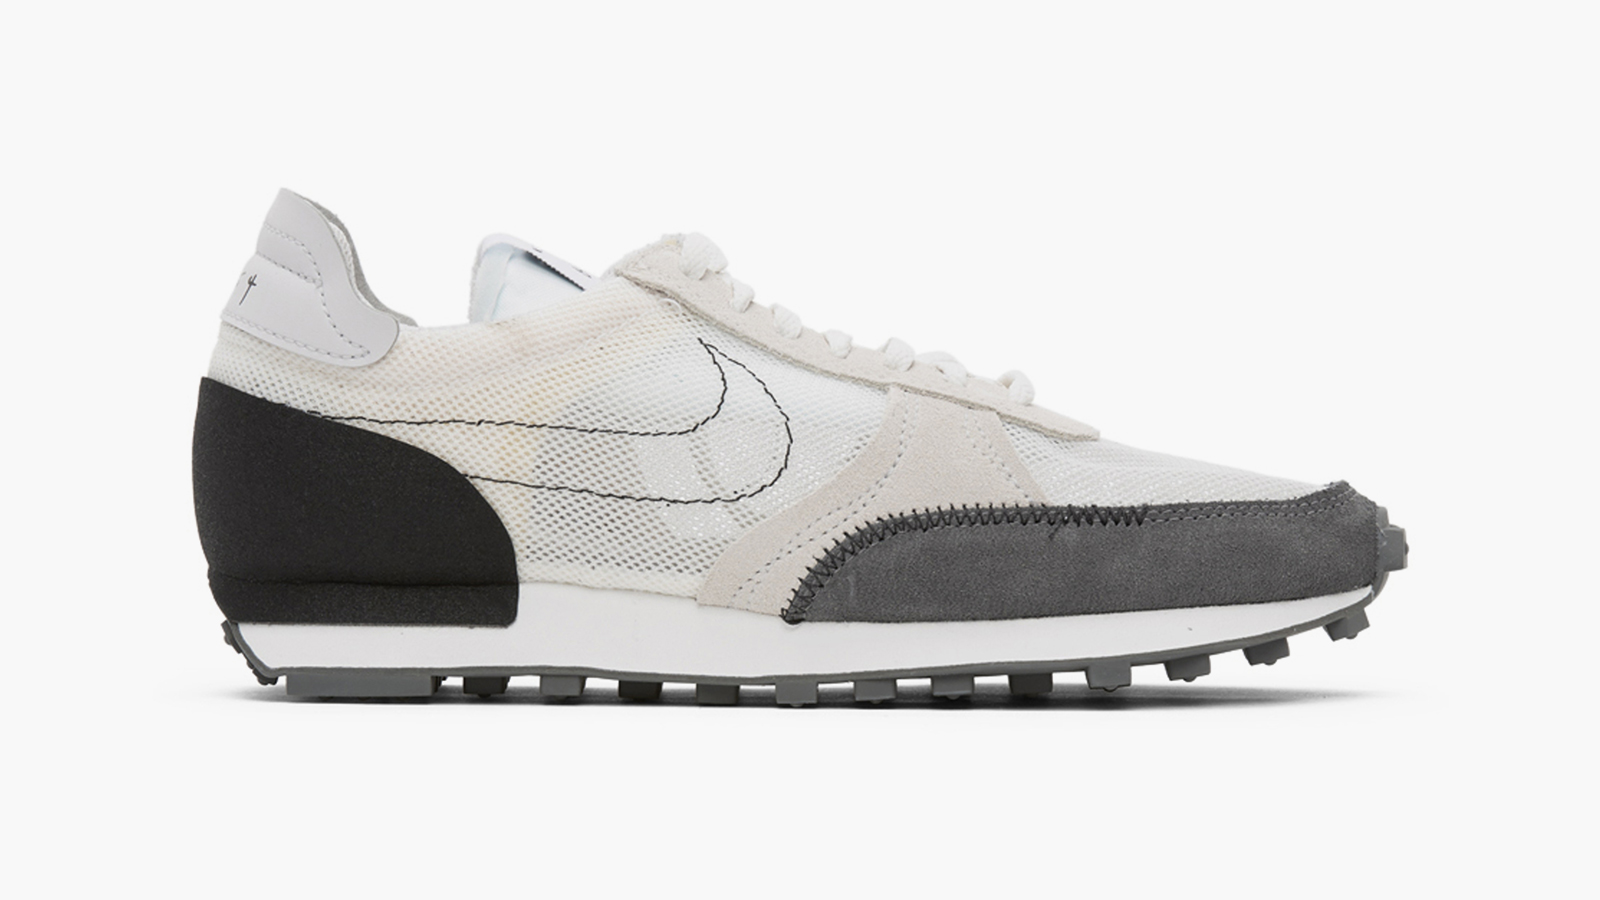 Nike Daybreak Type N.354 White & Black